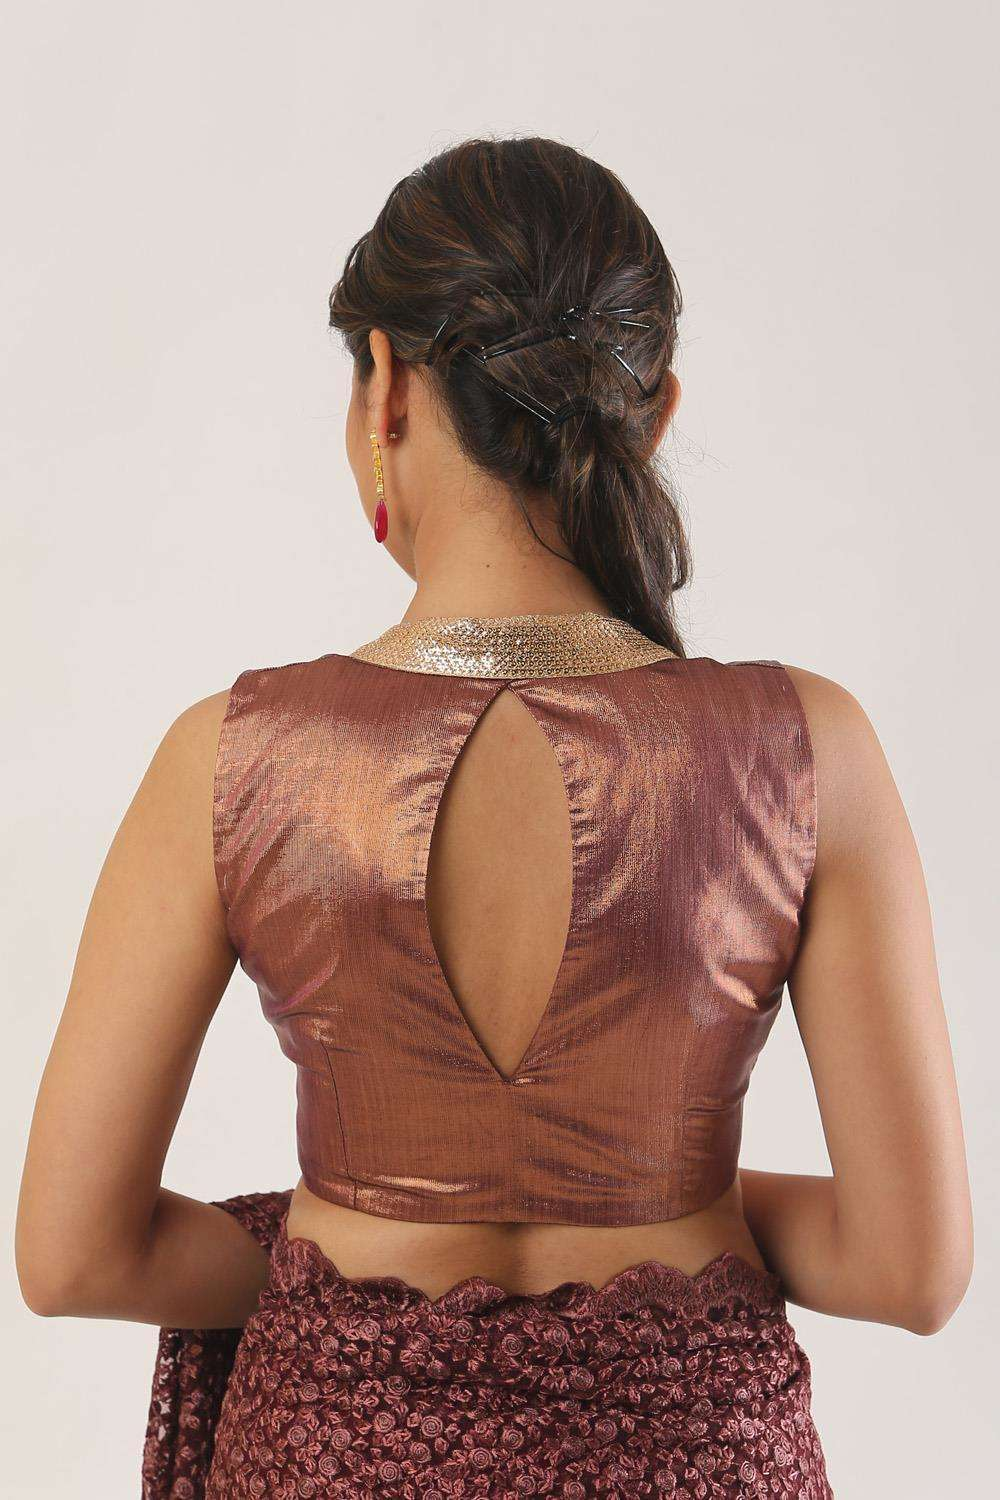 Copper shimmer tissue sleeveless blouse - House of Blouse